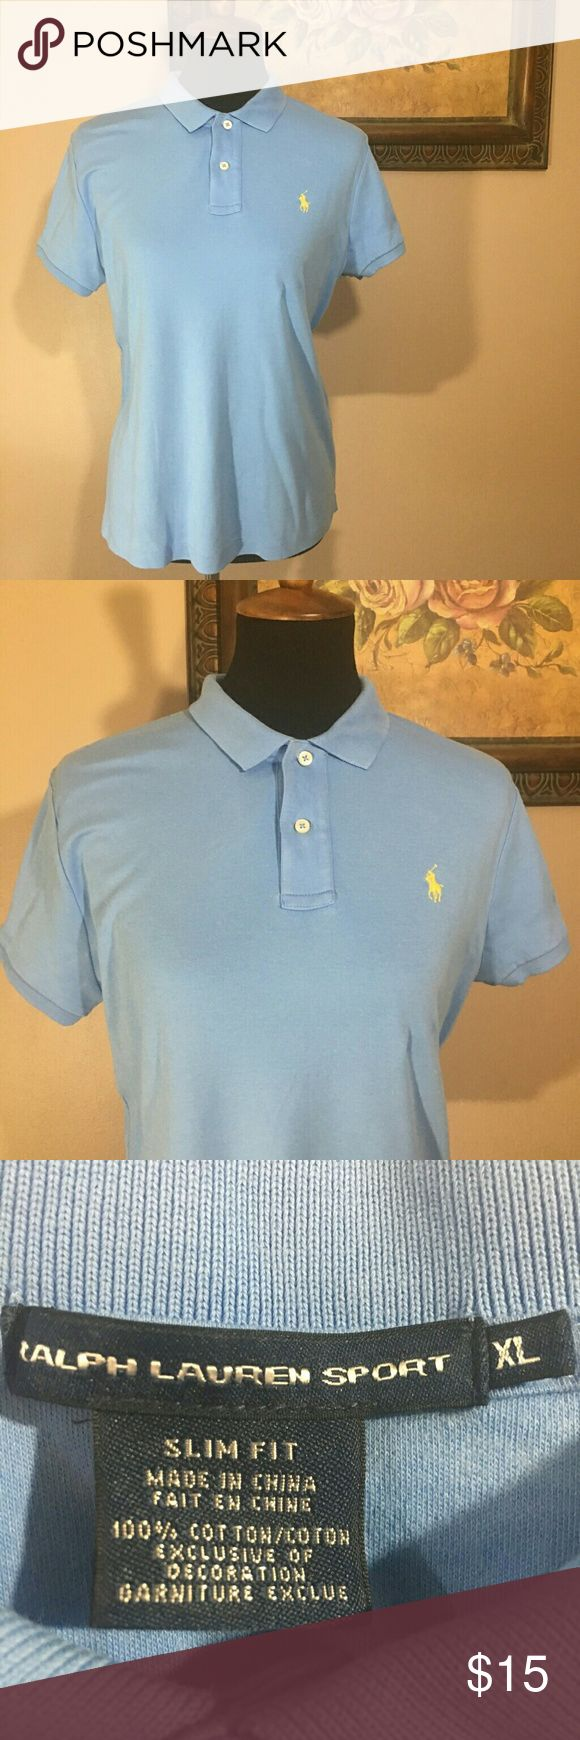 """Ralph Lauren Sport polo shirt Ralph Lauren Sport 2 button collar short sleeve polo shirt. Size XL.  Chest is 19"""" laying flat, length is 26"""". In excellent condition, no stains or tears Ralph Lauren Tops Tees - Short Sleeve"""